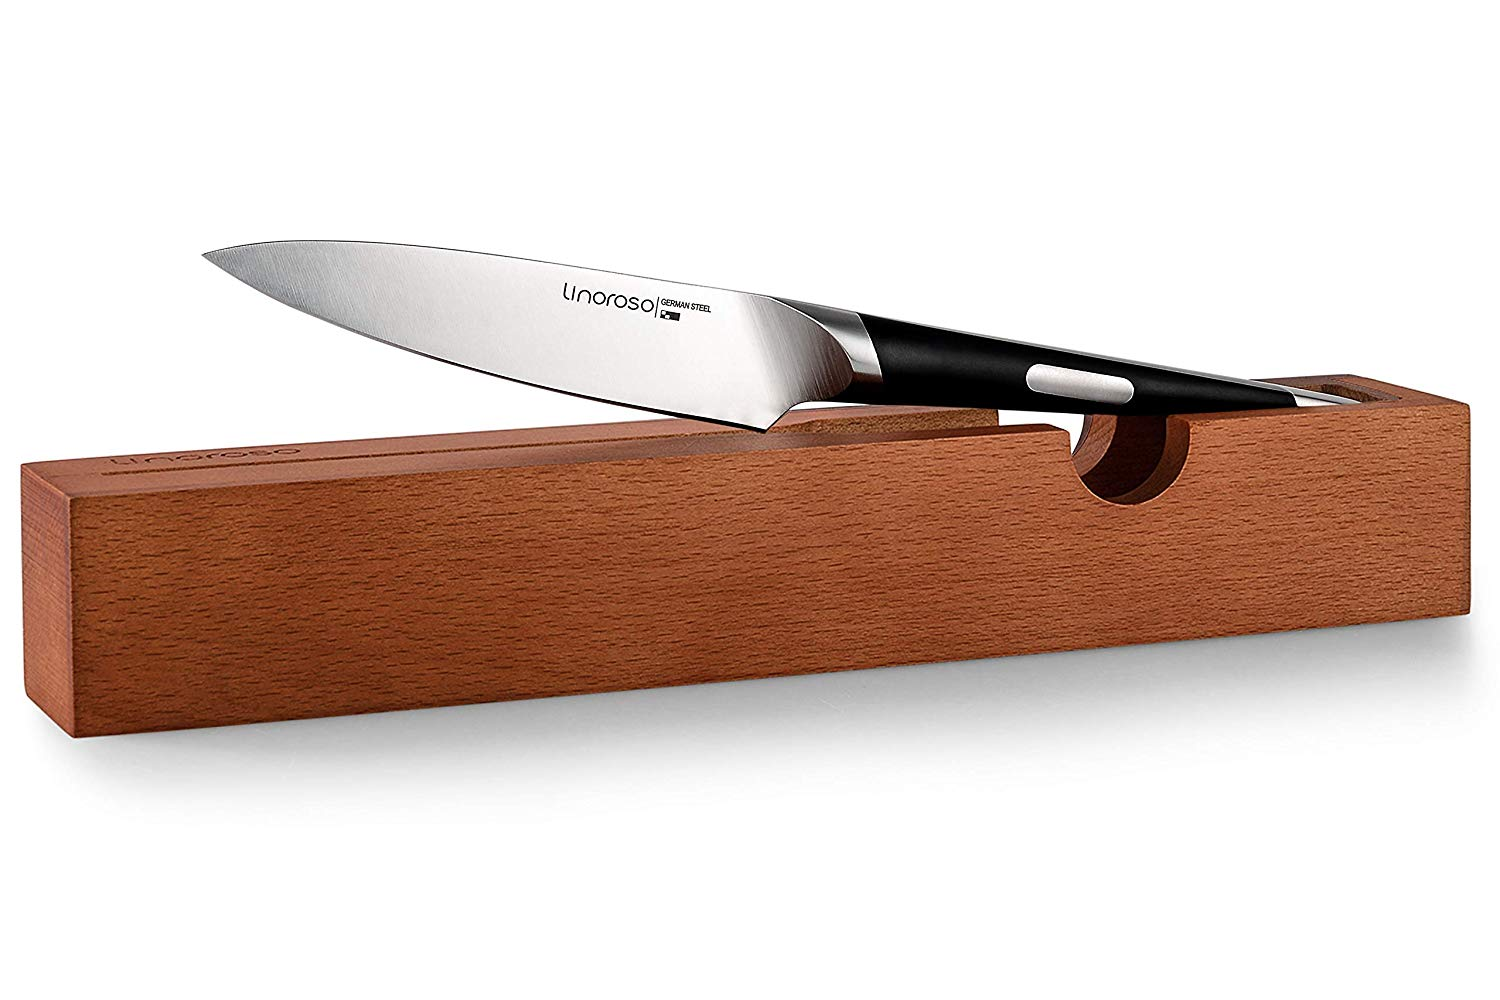 Linoroso Paring Knife - 4.5'' Kitchen Knife Sharp Fruit Knife with Oak Knife Tray, Best Quality German Made High Carbon Stainless Steel Knife,Fruit and Vegetable Carving Peeling Knife - MAKO Series